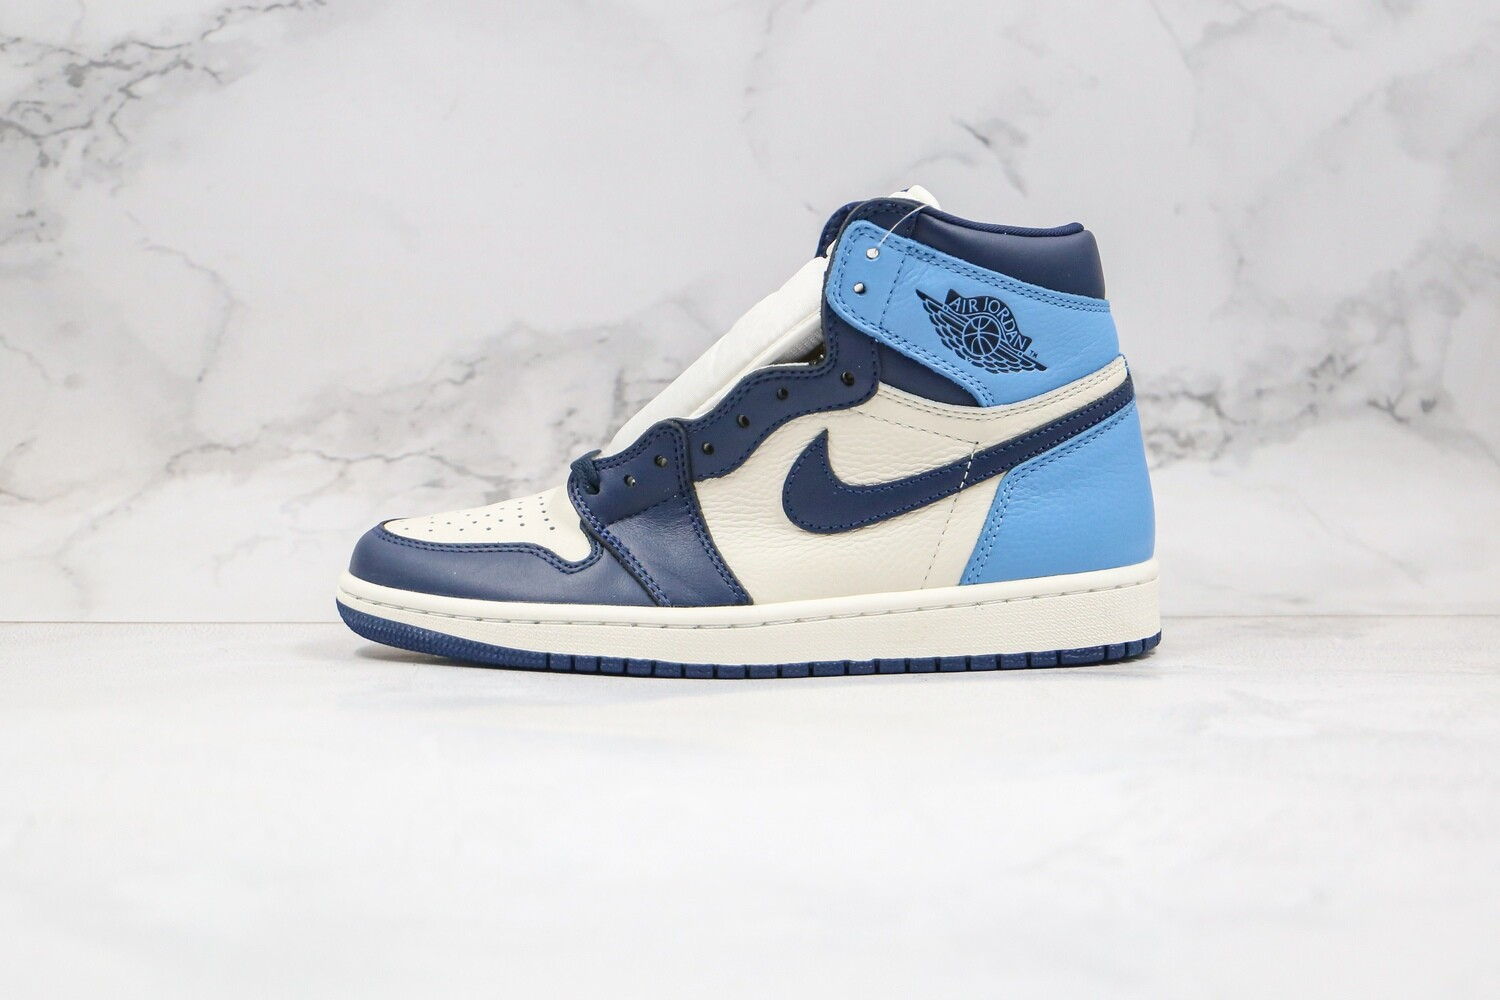 Air Jordan 1 Retro High Obsidian Basketball Shoes Casual Life sneakers